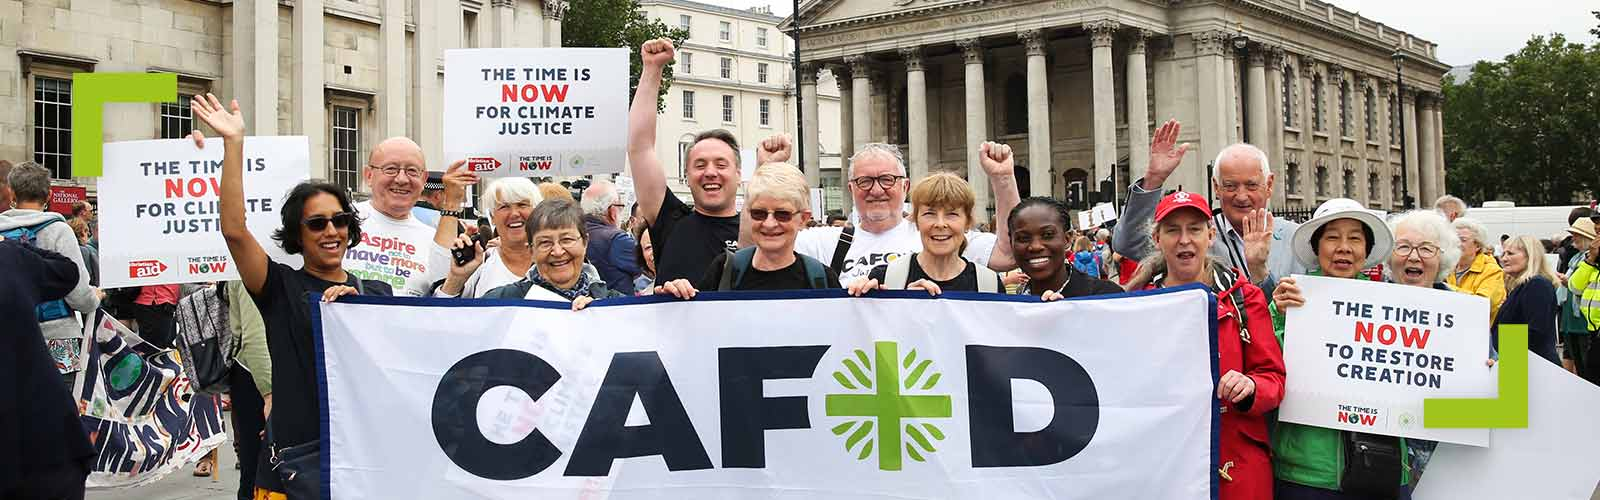 CAFOD supporters at The Time is Now mass lobby on climate change